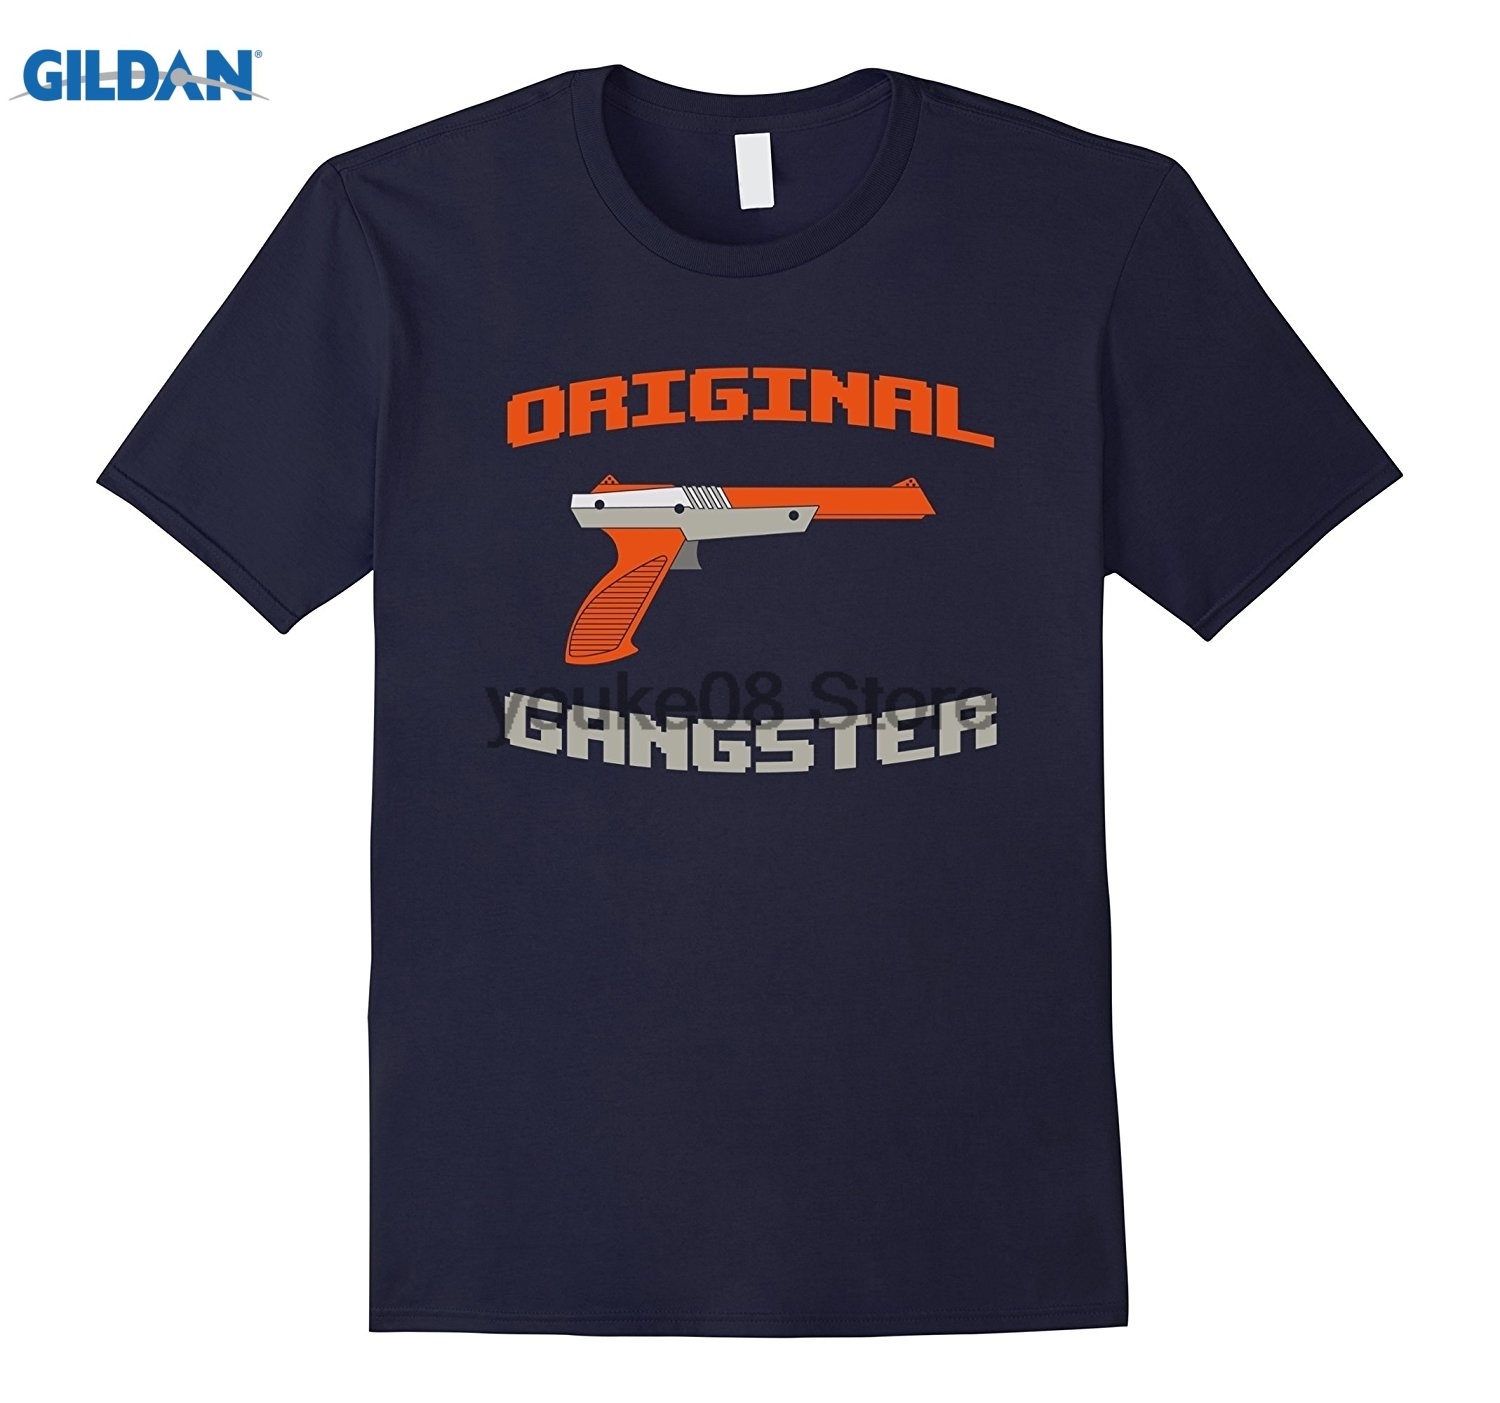 GILDAN 100% Cotton O-neck printed T-shirt Original Gangster Funny 80s Video Game System T Shirt